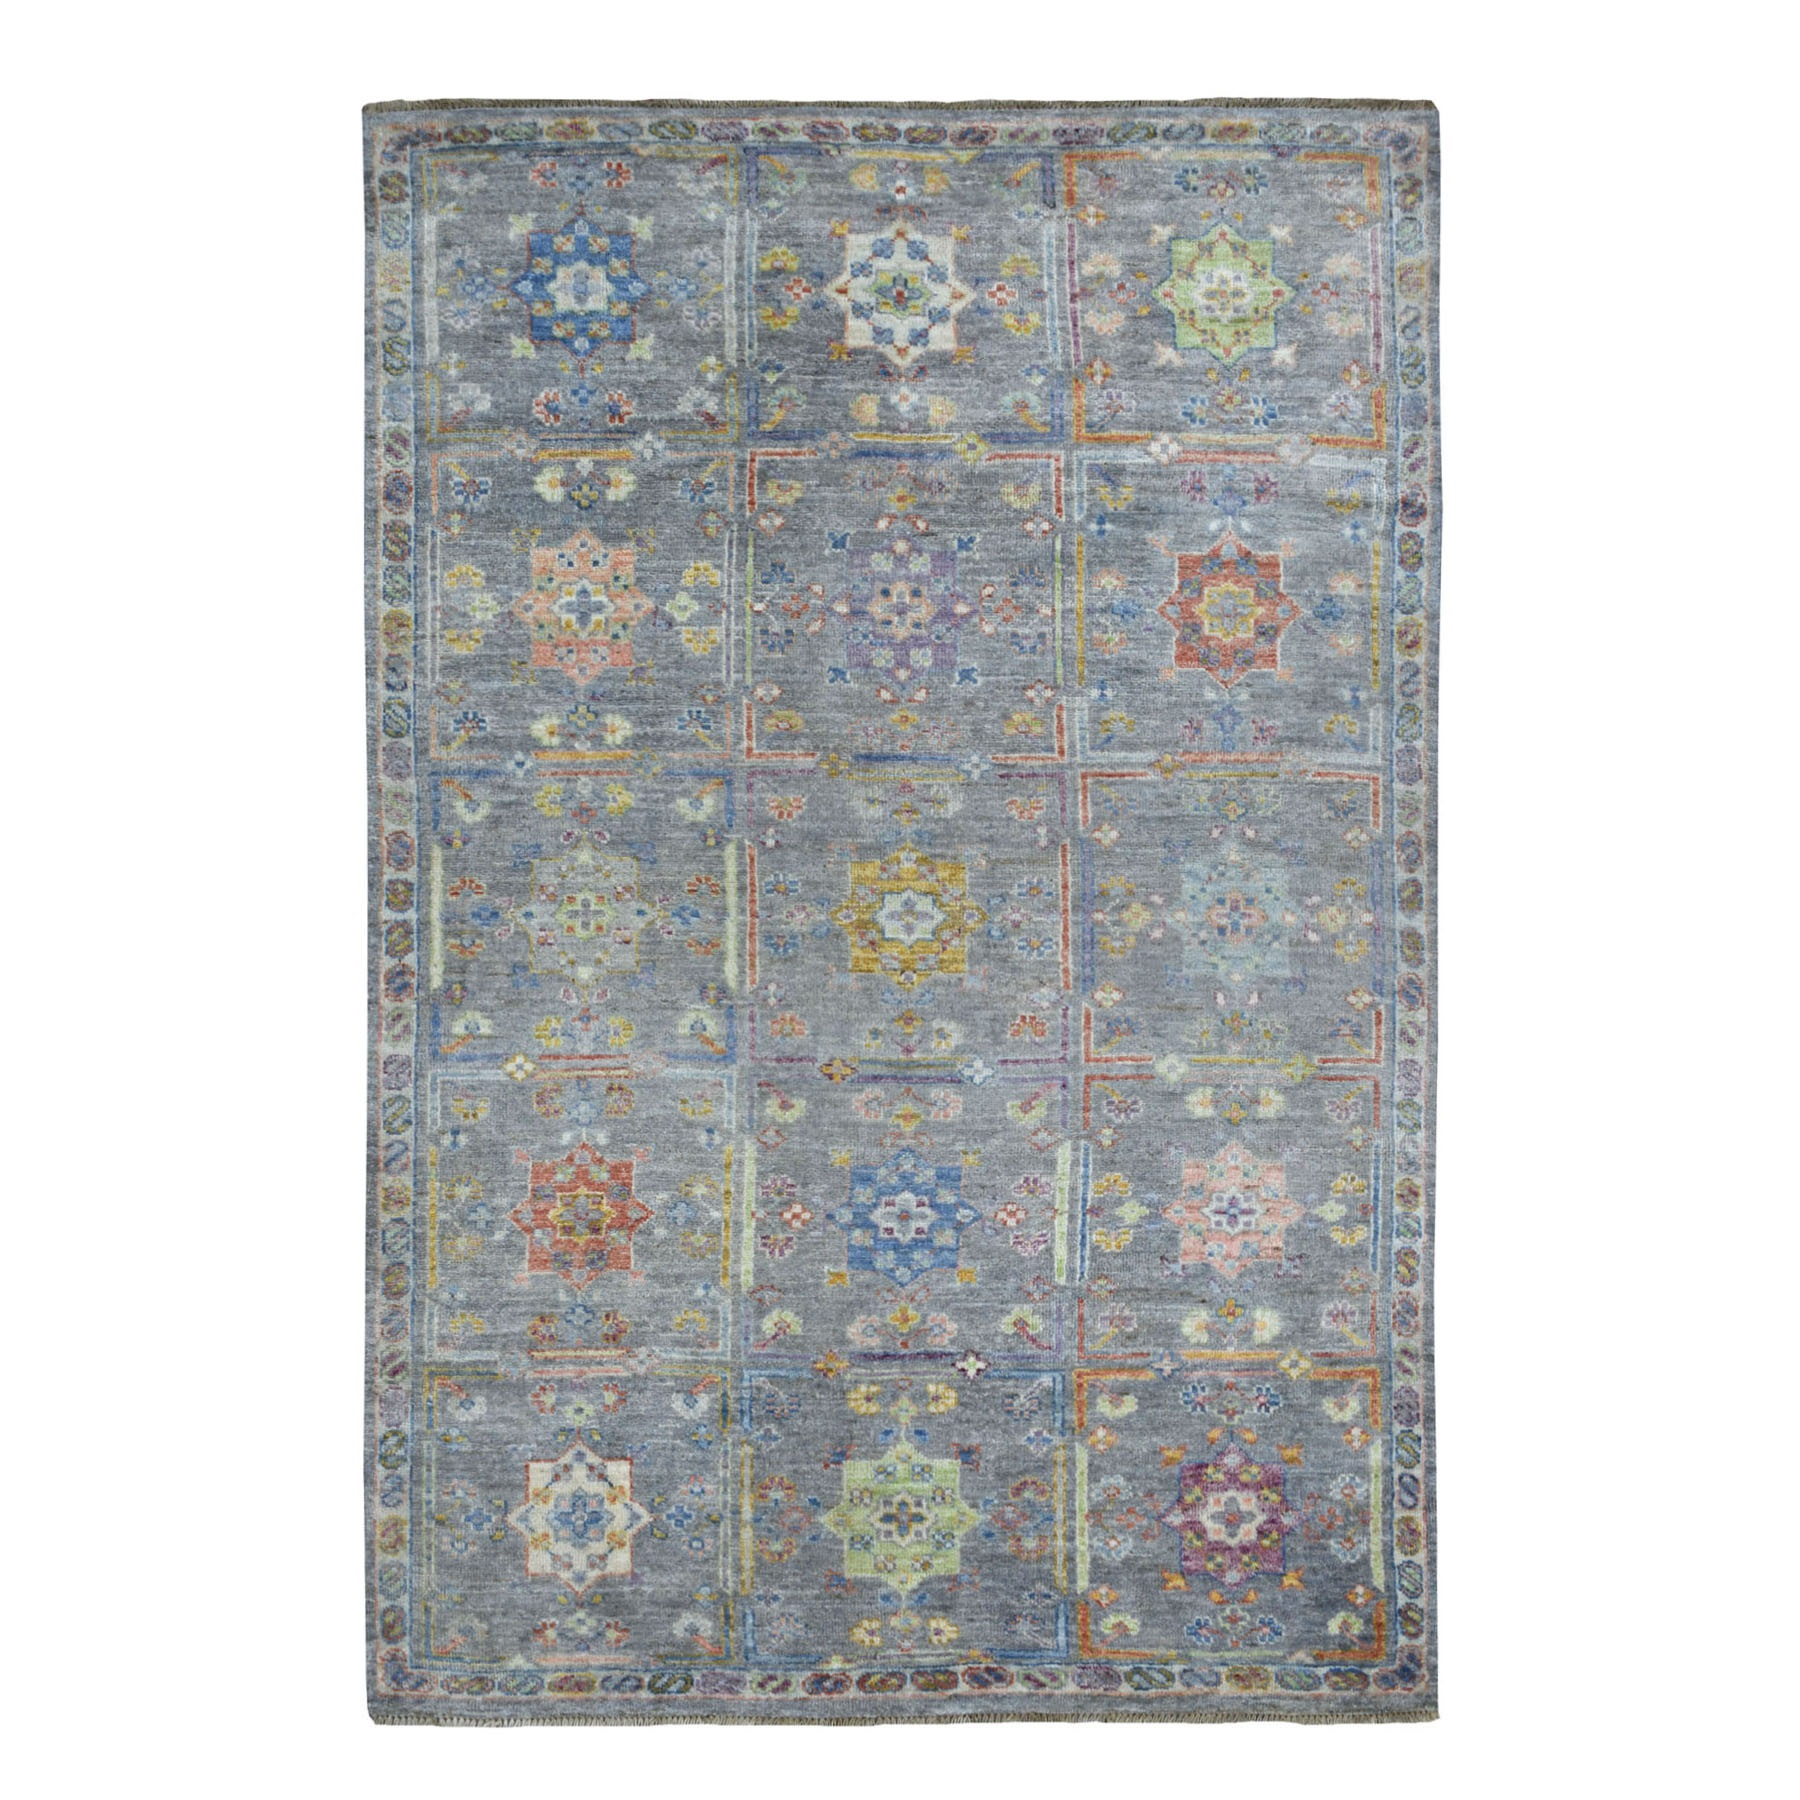 6'X9' Gray Box Design With Rosettes, Anatolian Soft Wool Hand Knotted Oriental Rug moaede8b